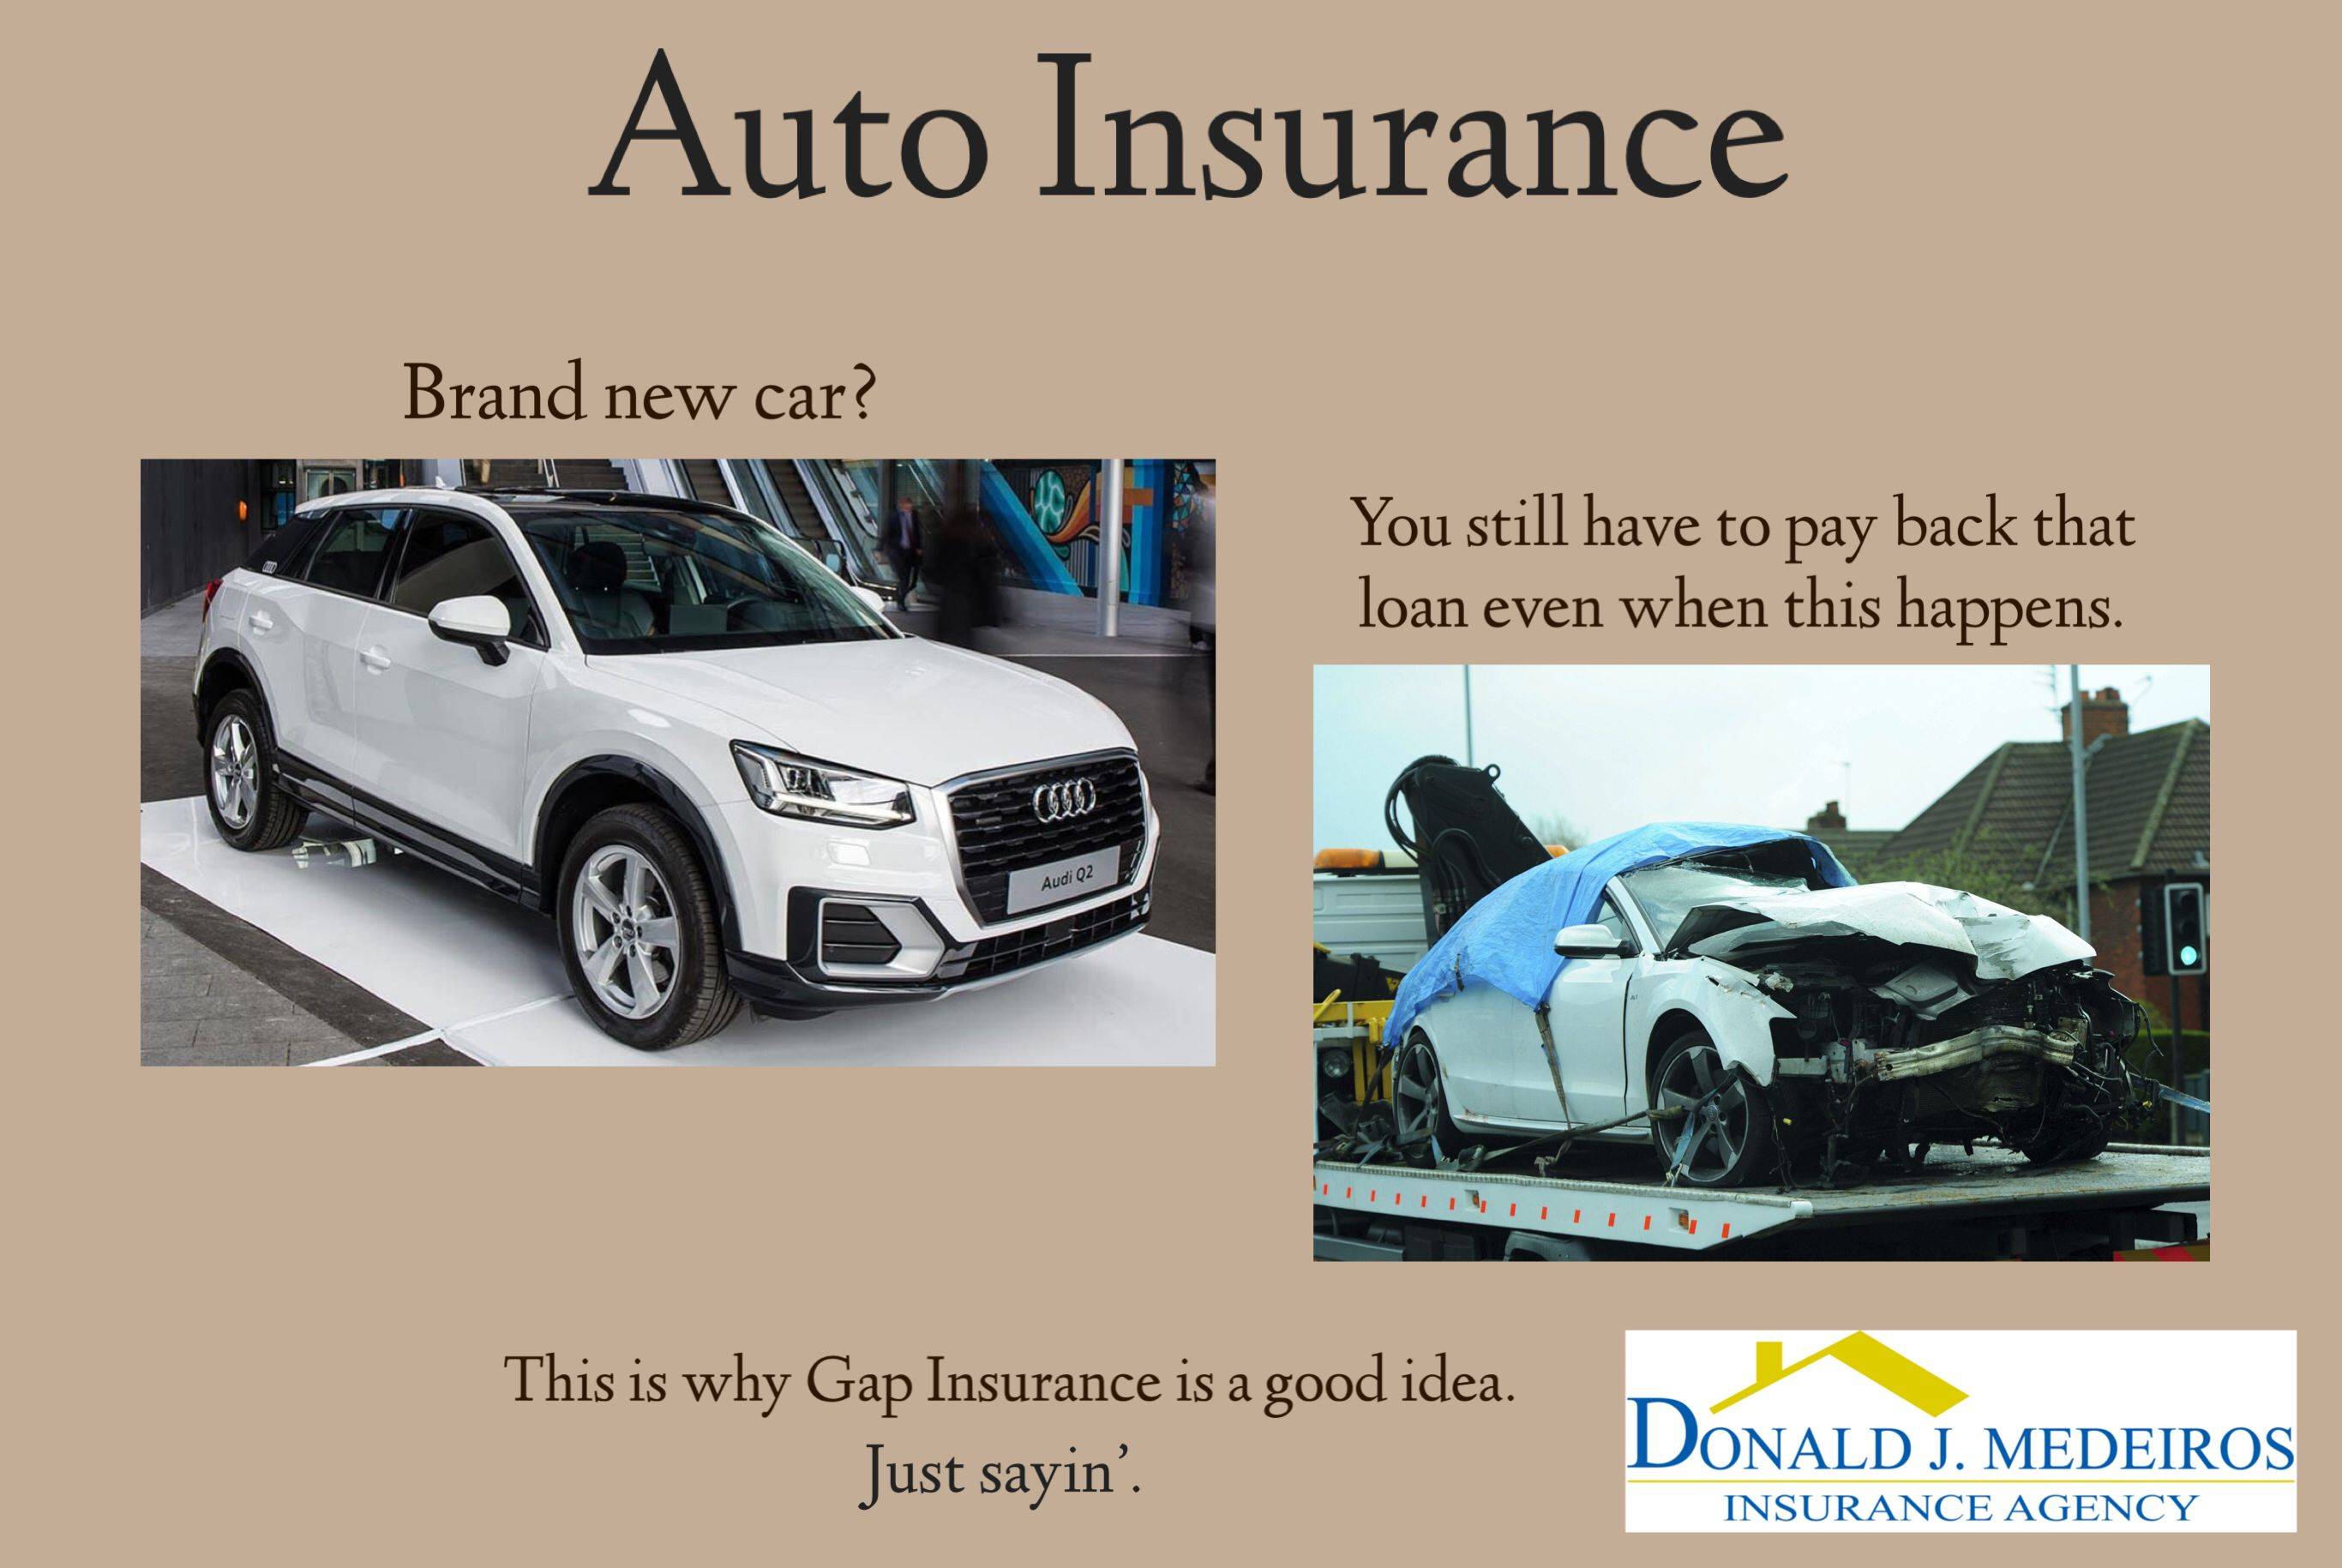 Gap Insurance A Great Idea For That New Car With Images